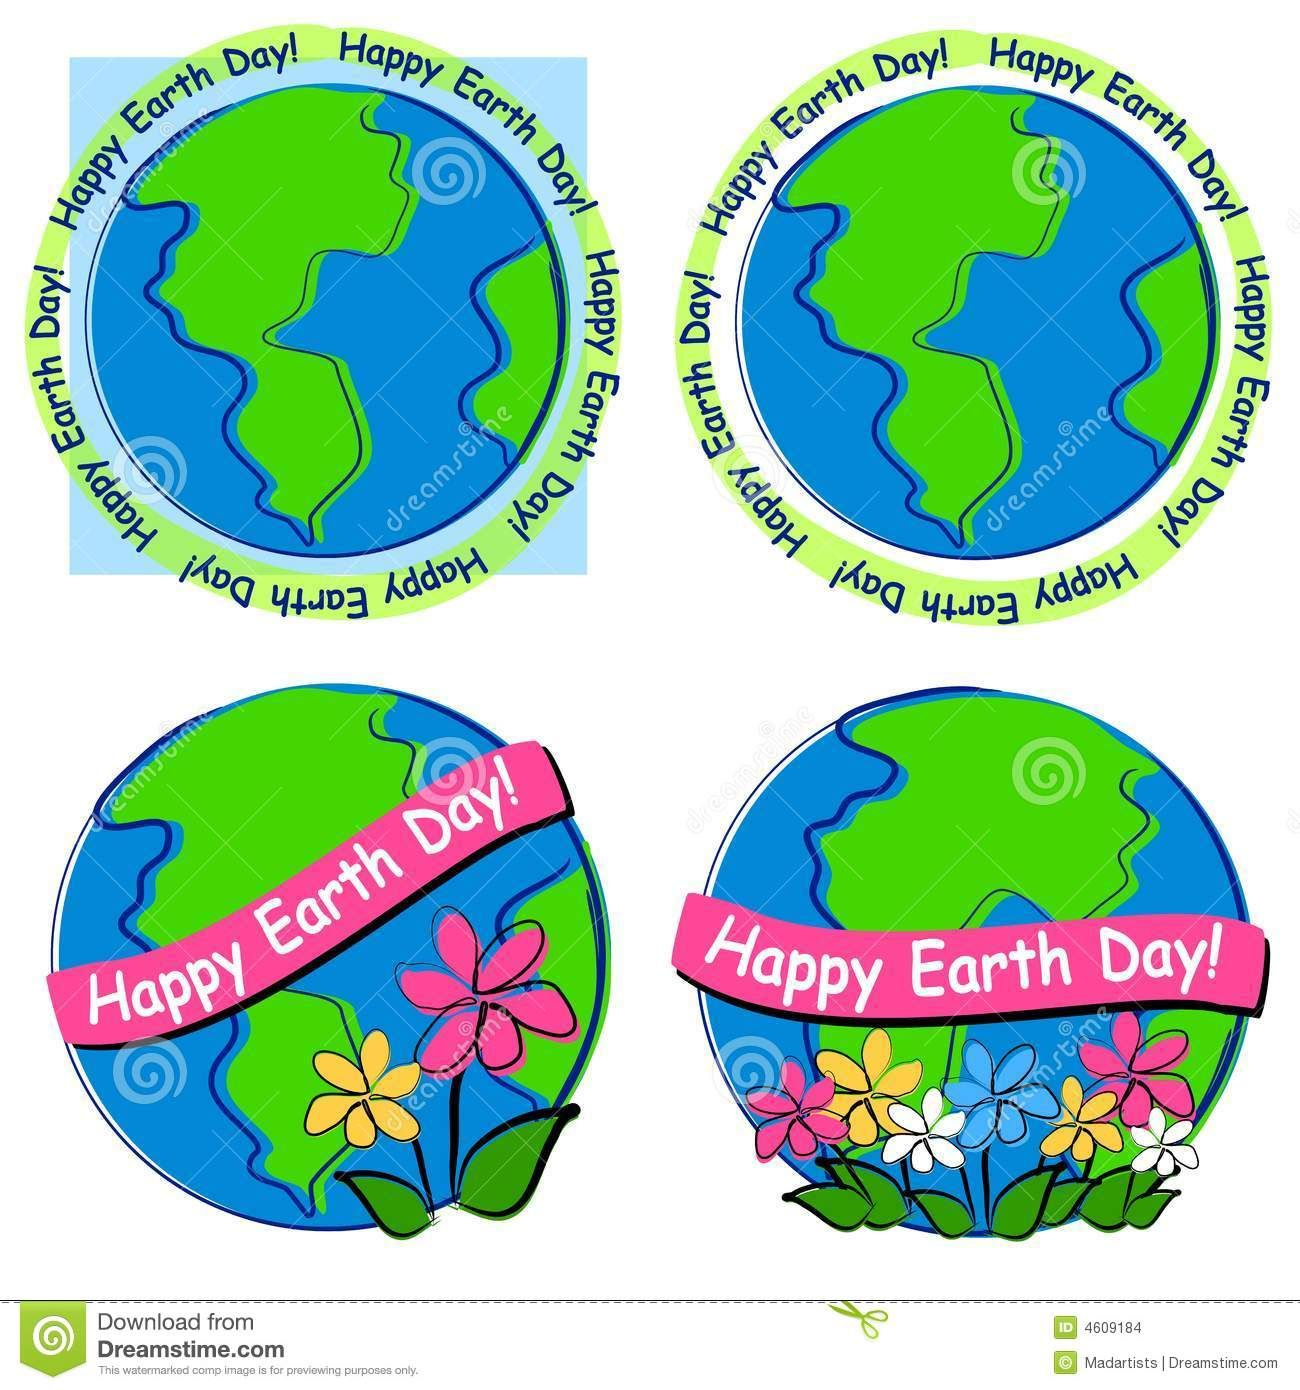 Clipart earth high quality. Happy day clip art